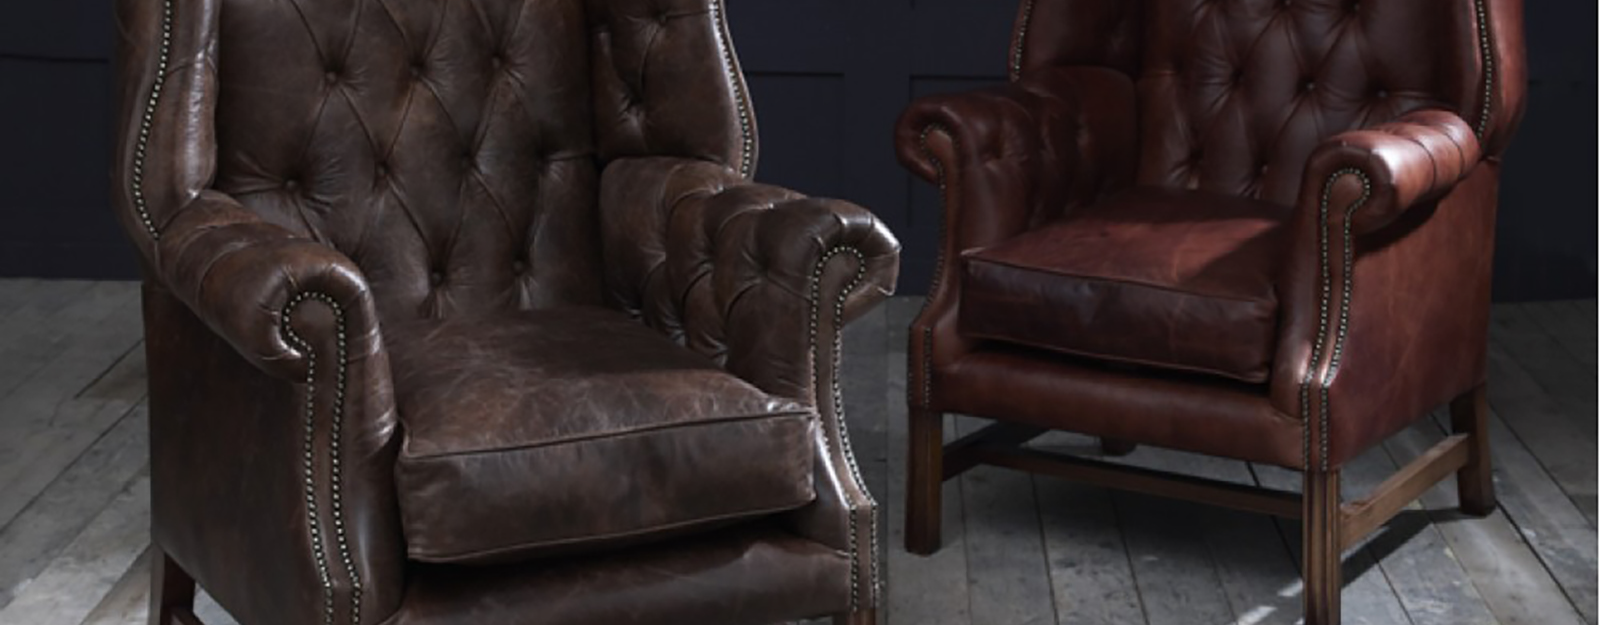 Fantastic Furniture Design History Why Do Wingback Chairs Have Wings Spiritservingveterans Wood Chair Design Ideas Spiritservingveteransorg